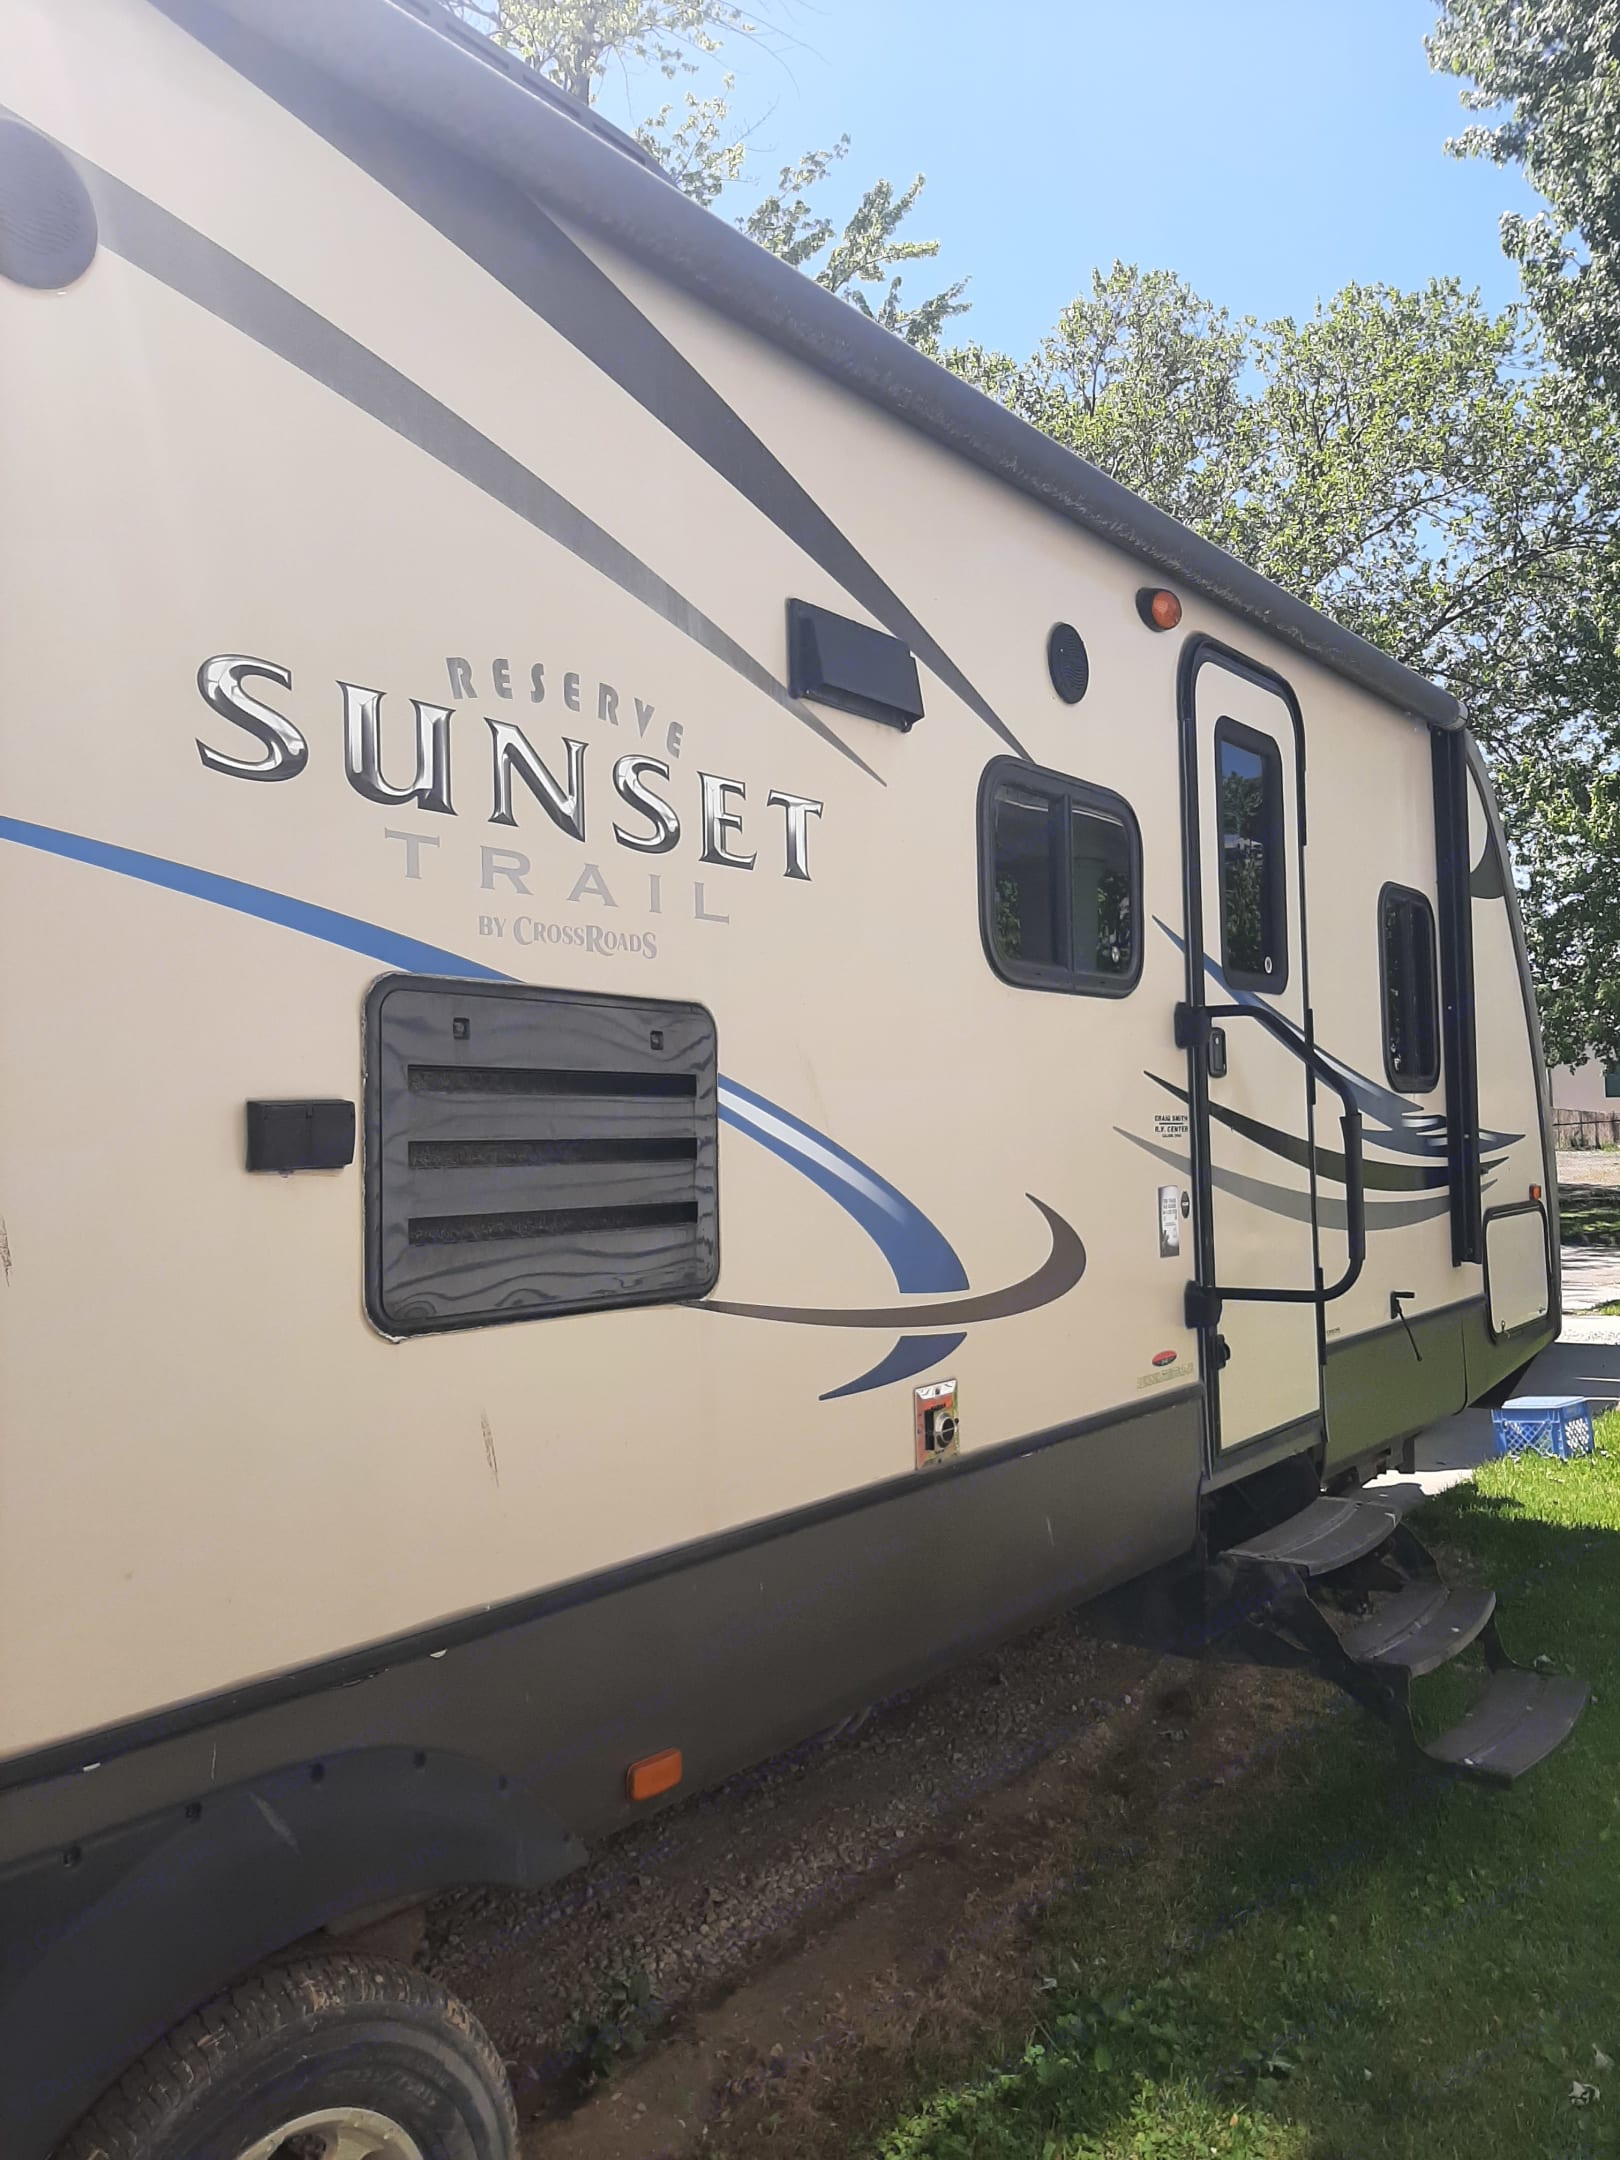 Entrance to Trailer. Crossroads Sunset Trail 2013